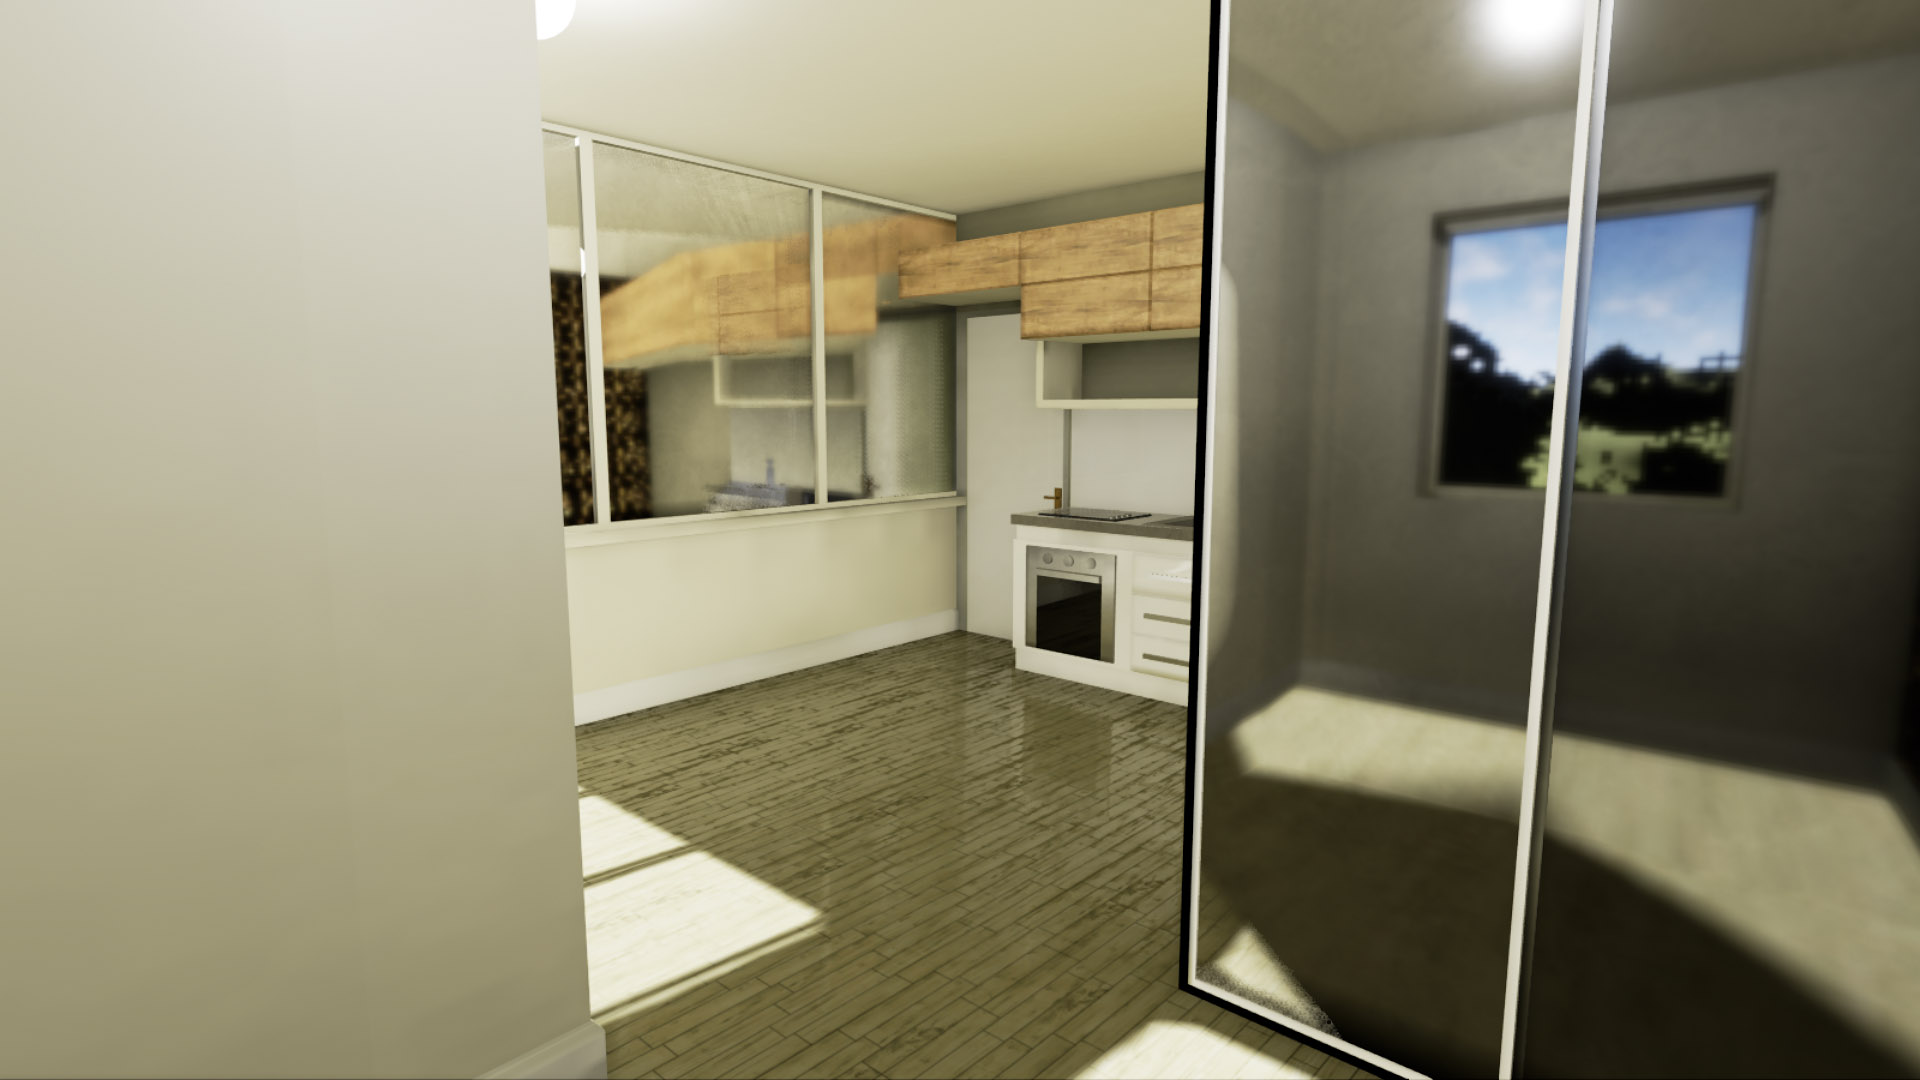 P3URB_Apartment_0002_Overview2.jpg